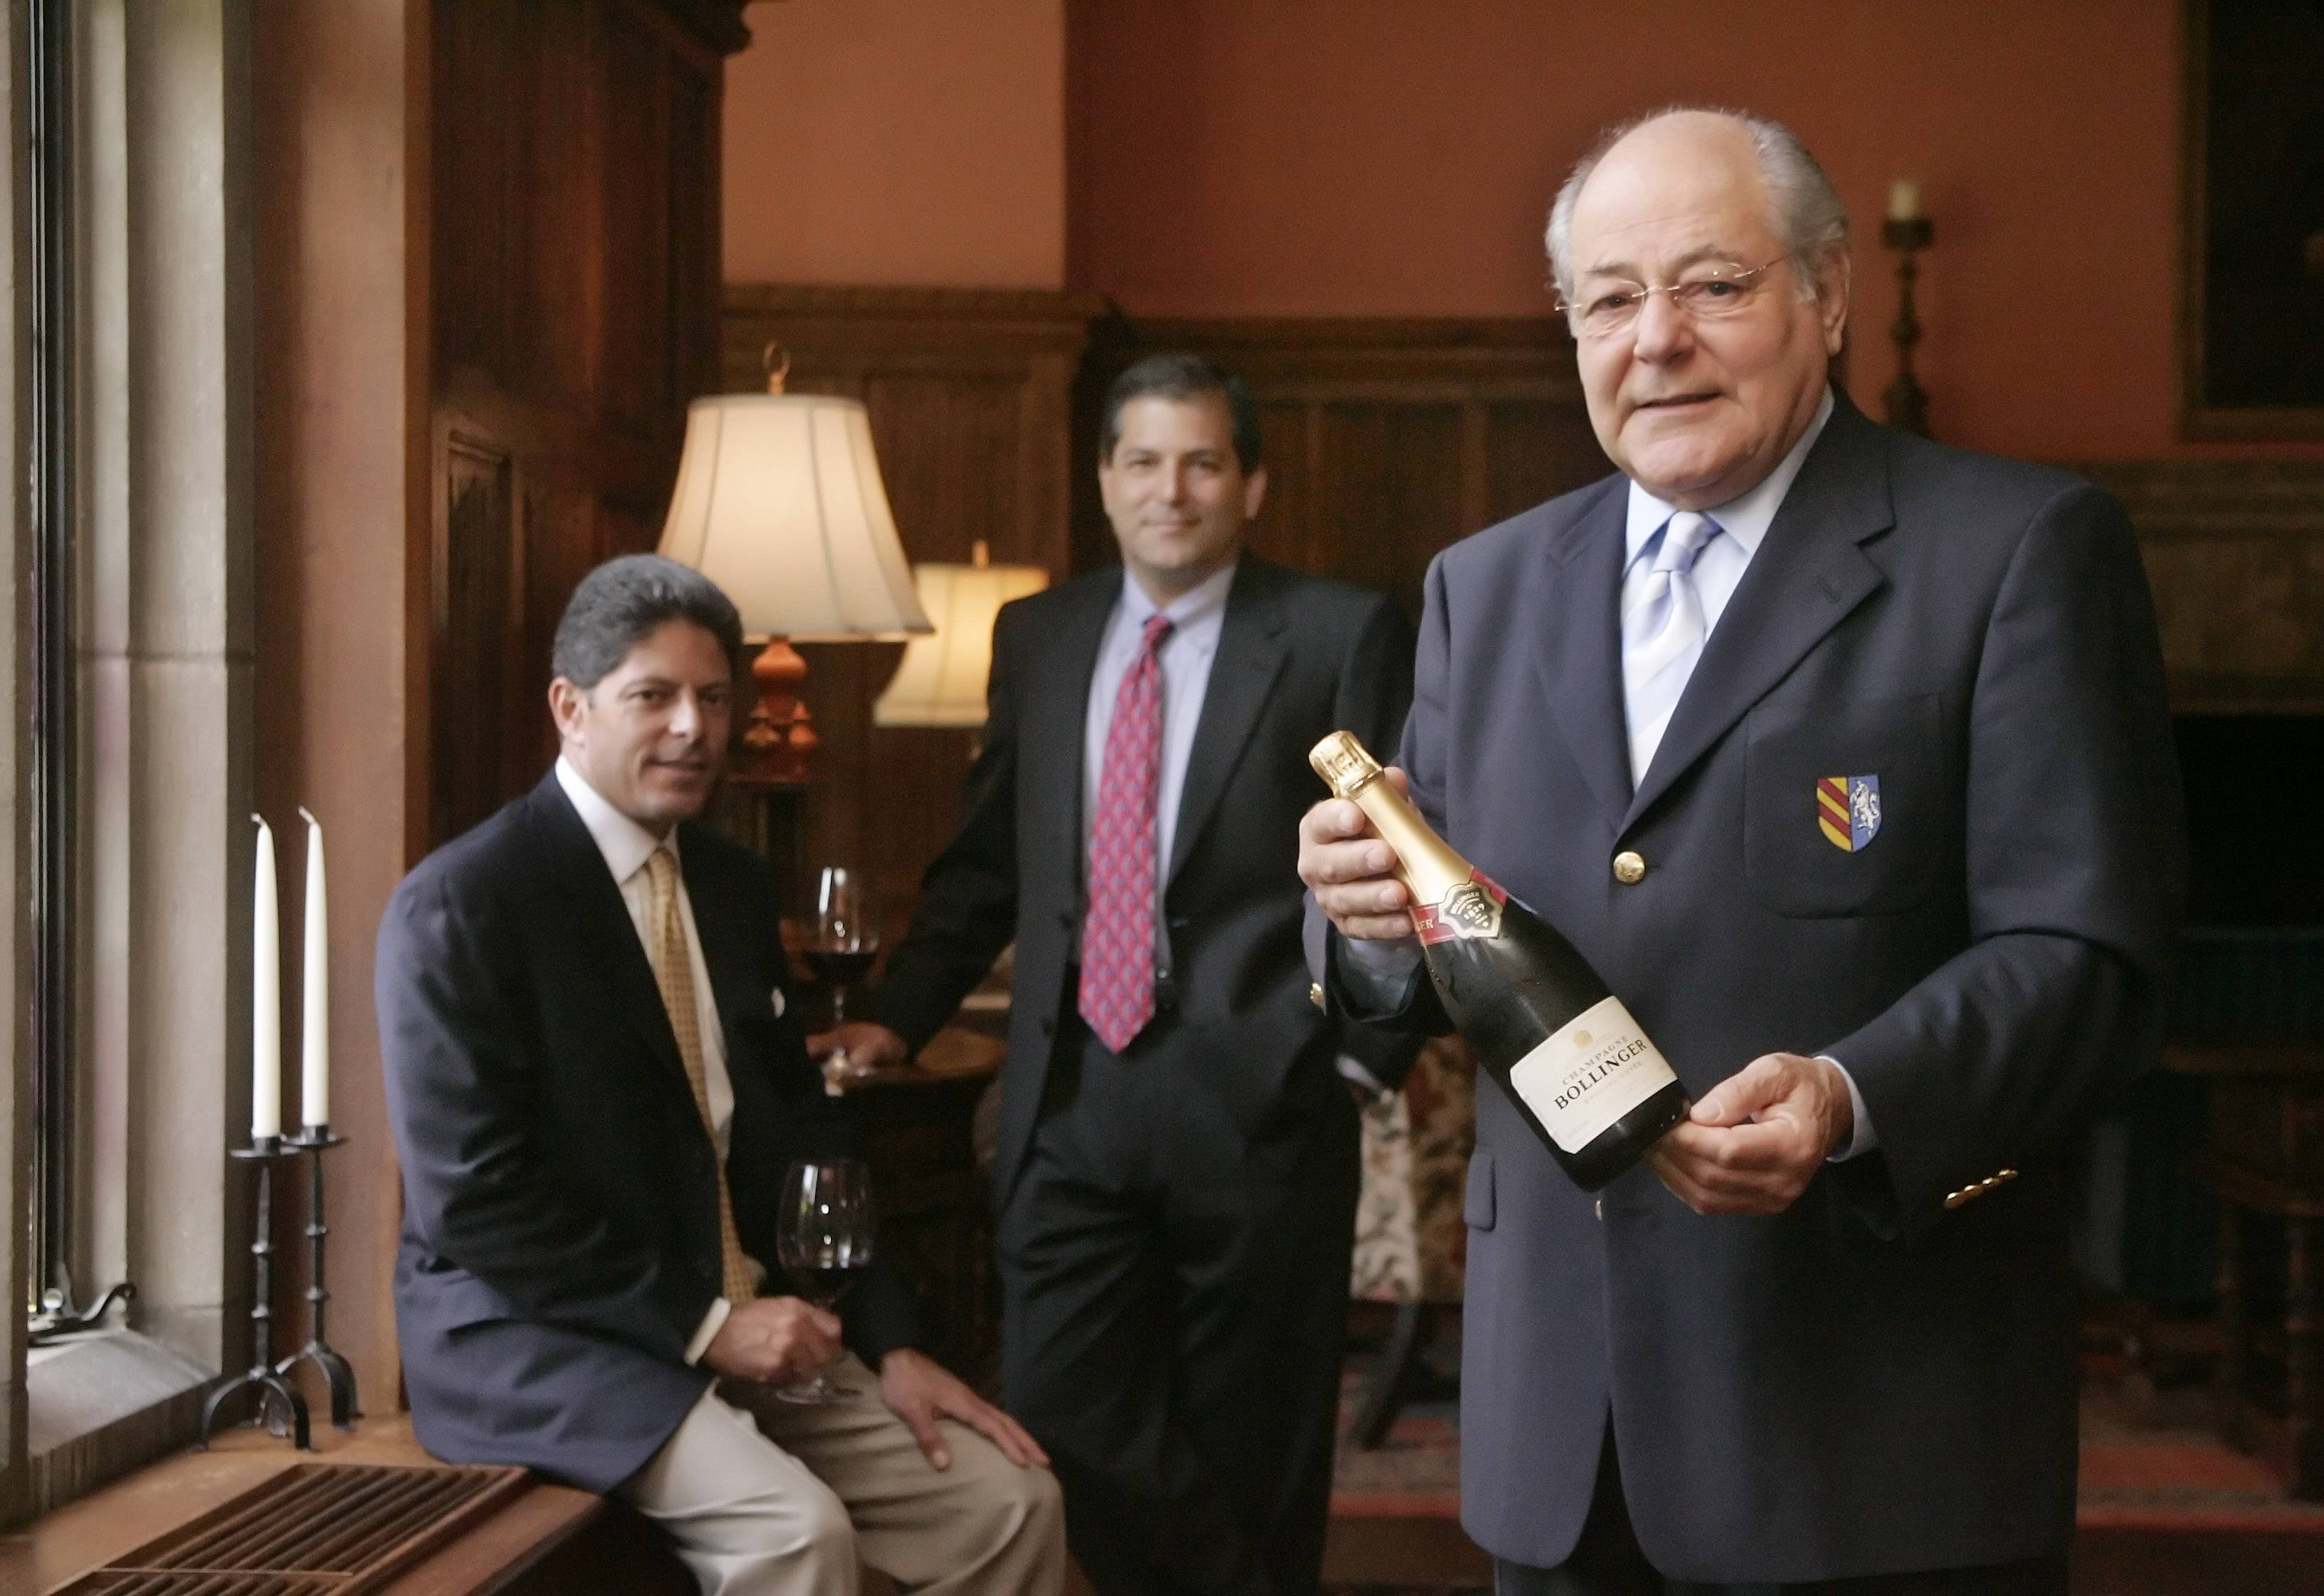 Sons John and Bill Terlato and their father, Anthony Terlato, of Terlato Wines in Lake Bluff in this file photo.